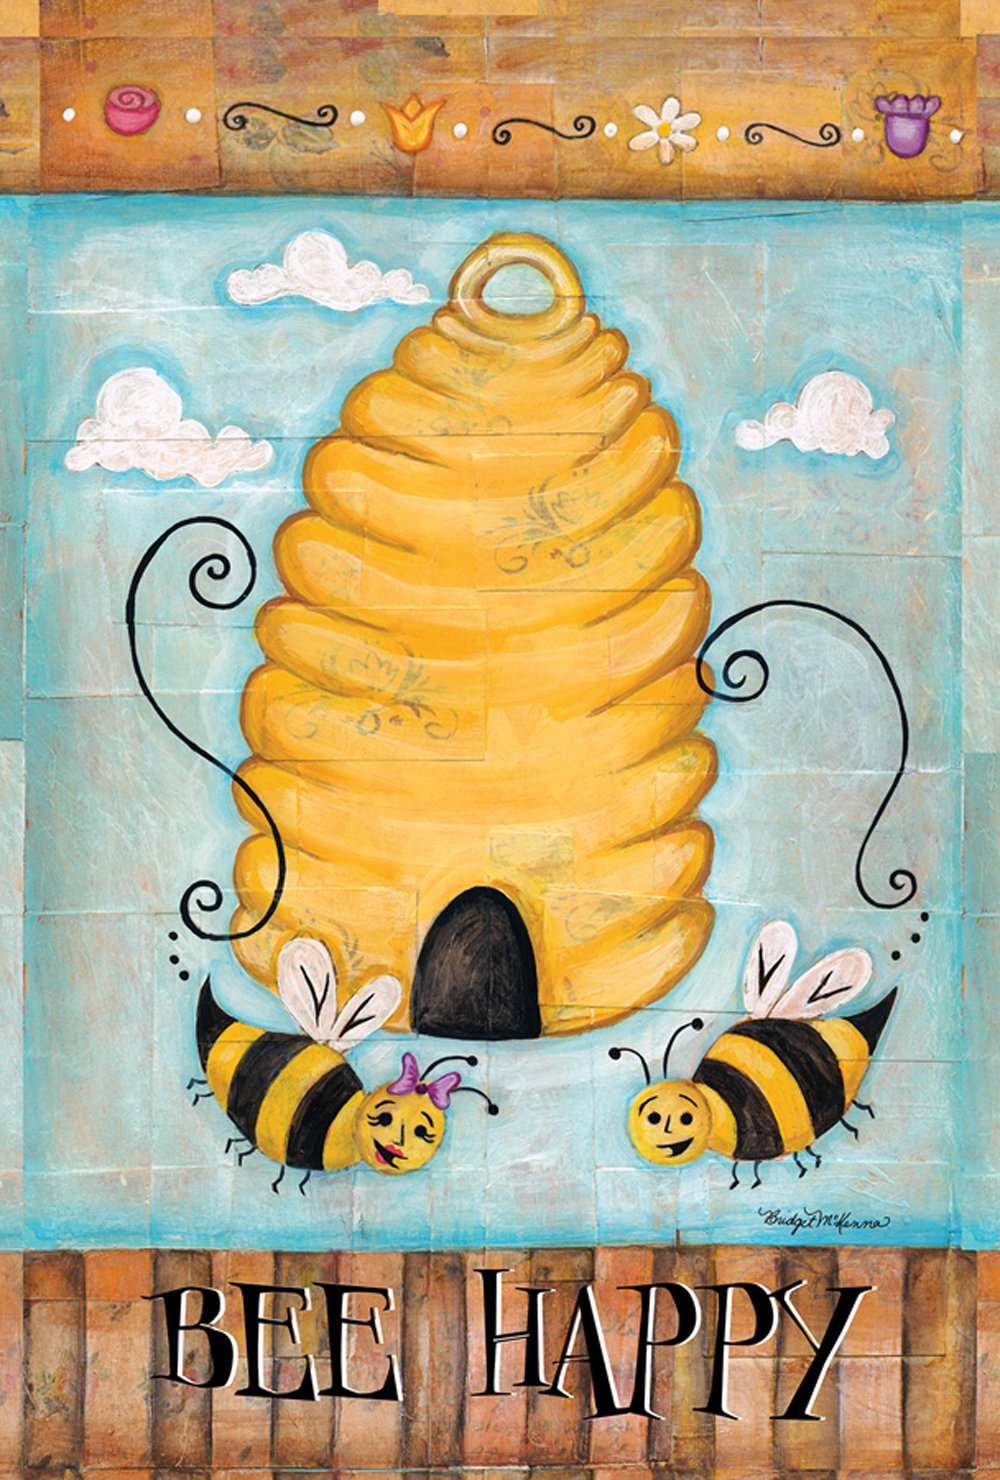 Toland Home Garden Bee Happy 12.5 x 18 Inch Decorative Cute Buzzing Bees Hive Garden Flag